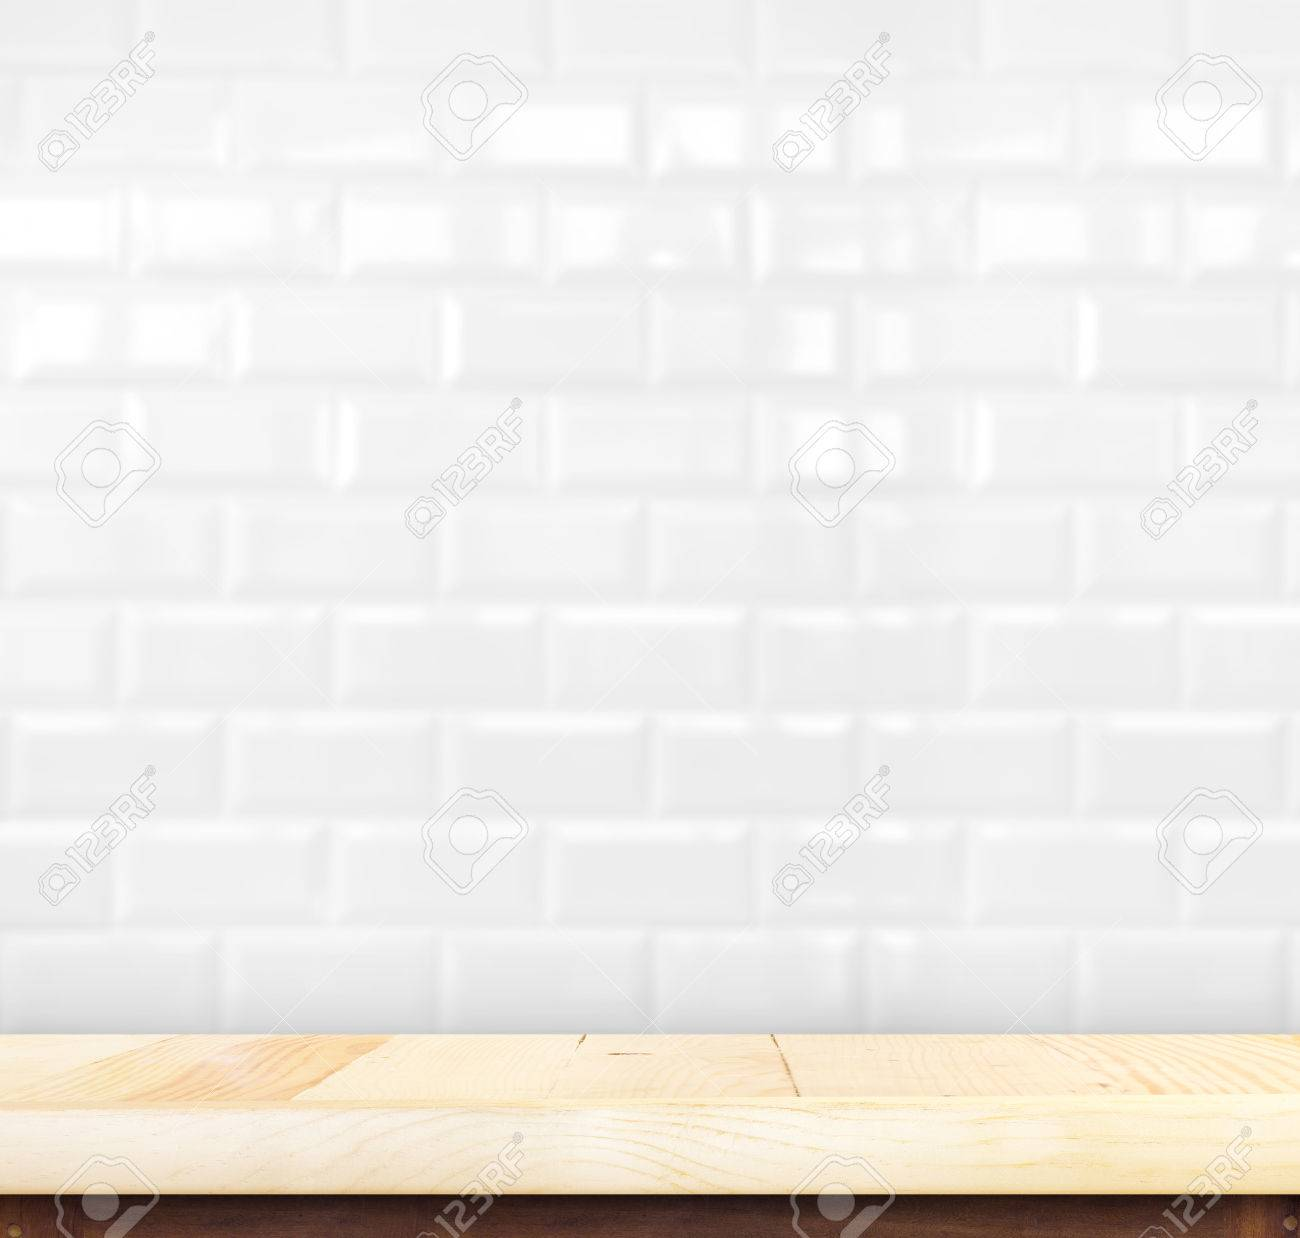 Empty wood table top with white ceramic tiles wallproduct display empty wood table top with white ceramic tiles wallproduct display template stock photo dailygadgetfo Gallery